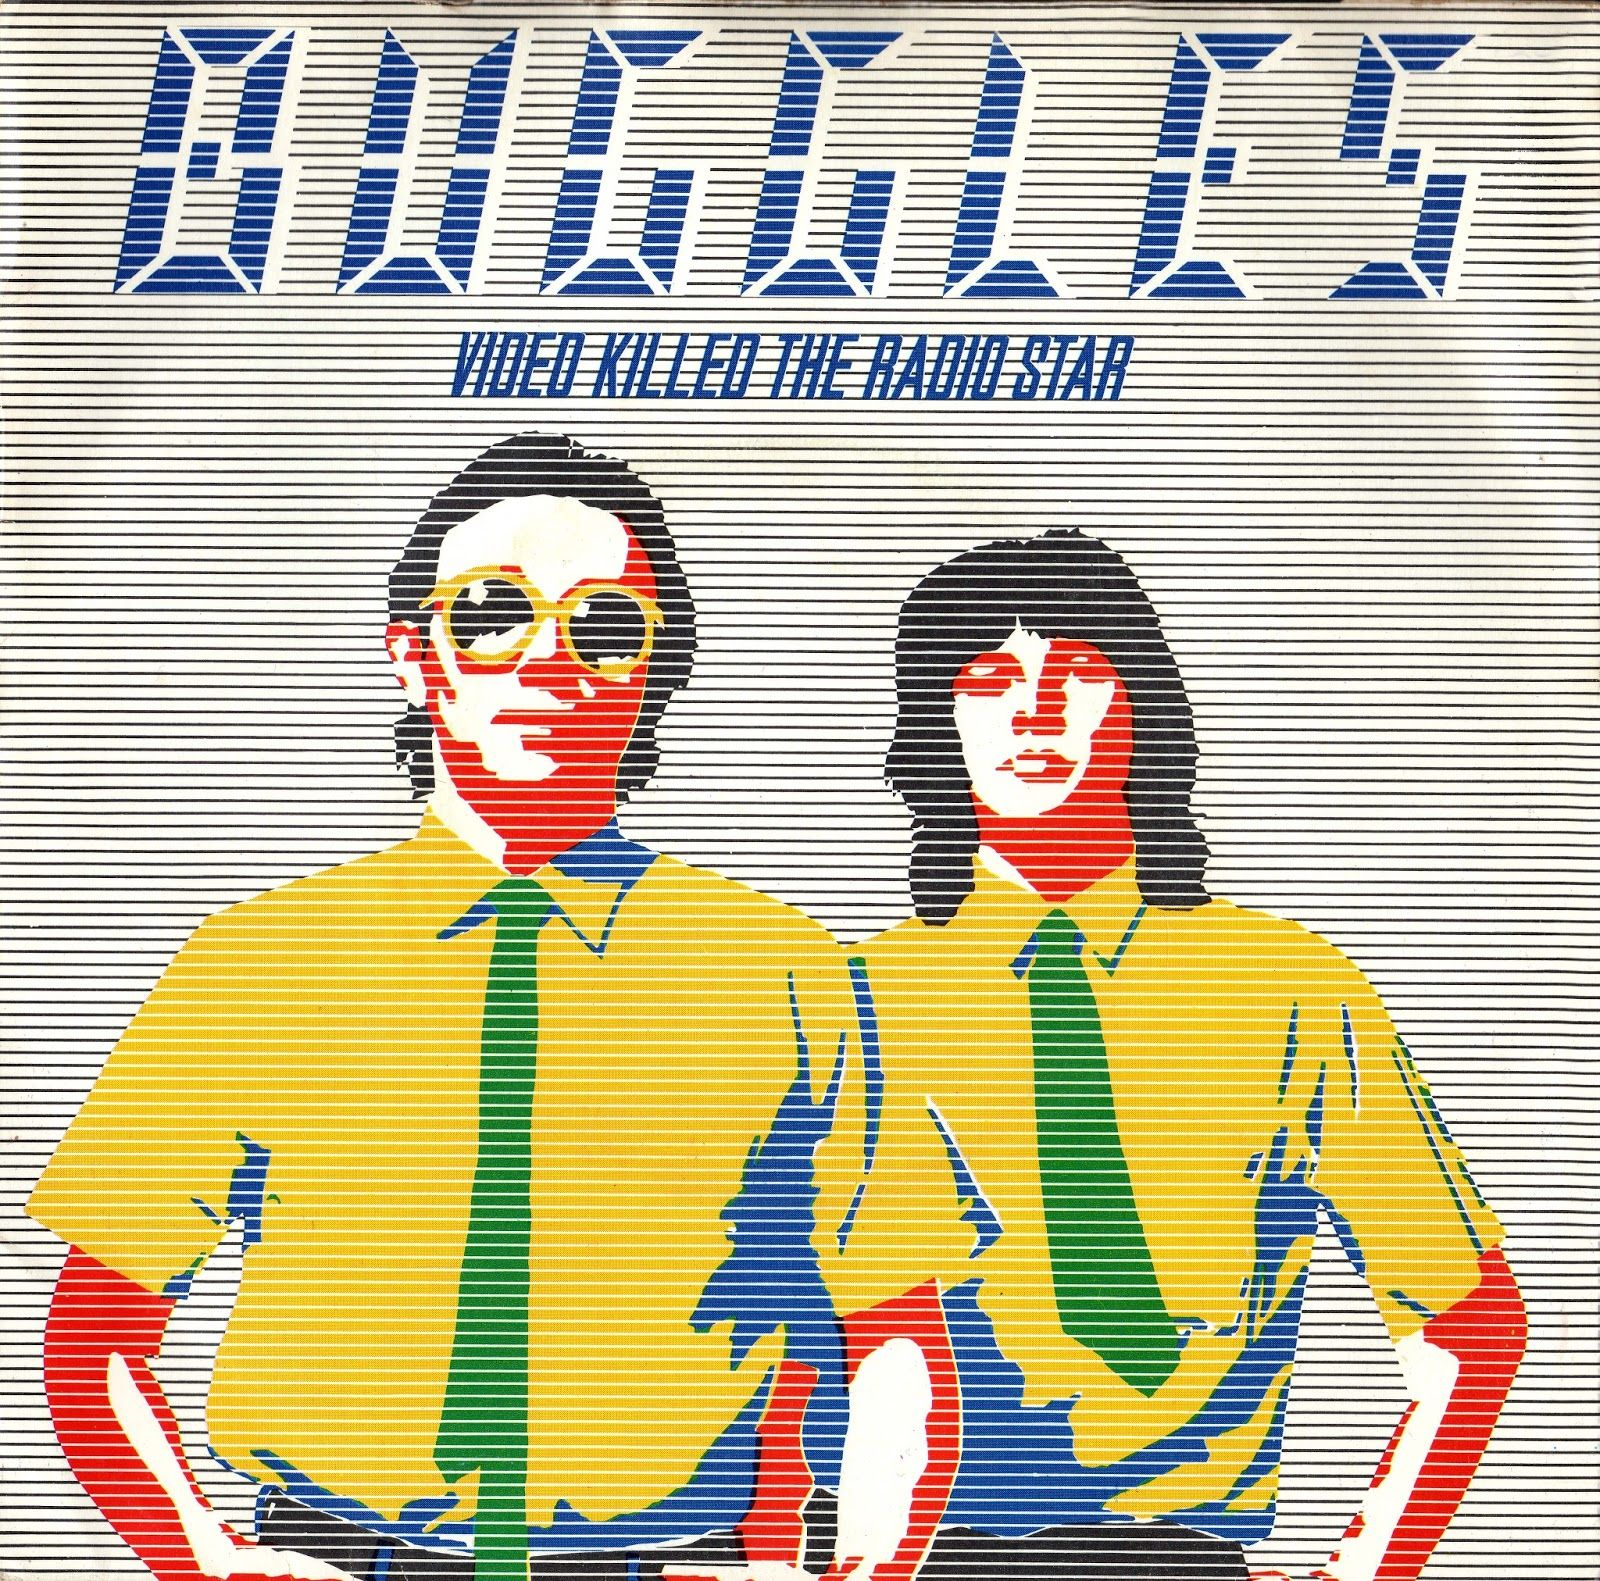 Did You Know That The First Mtv Video Played Was Video Killed The Radio Star By The Buggles Mtv Videos Movie Posters Mtv